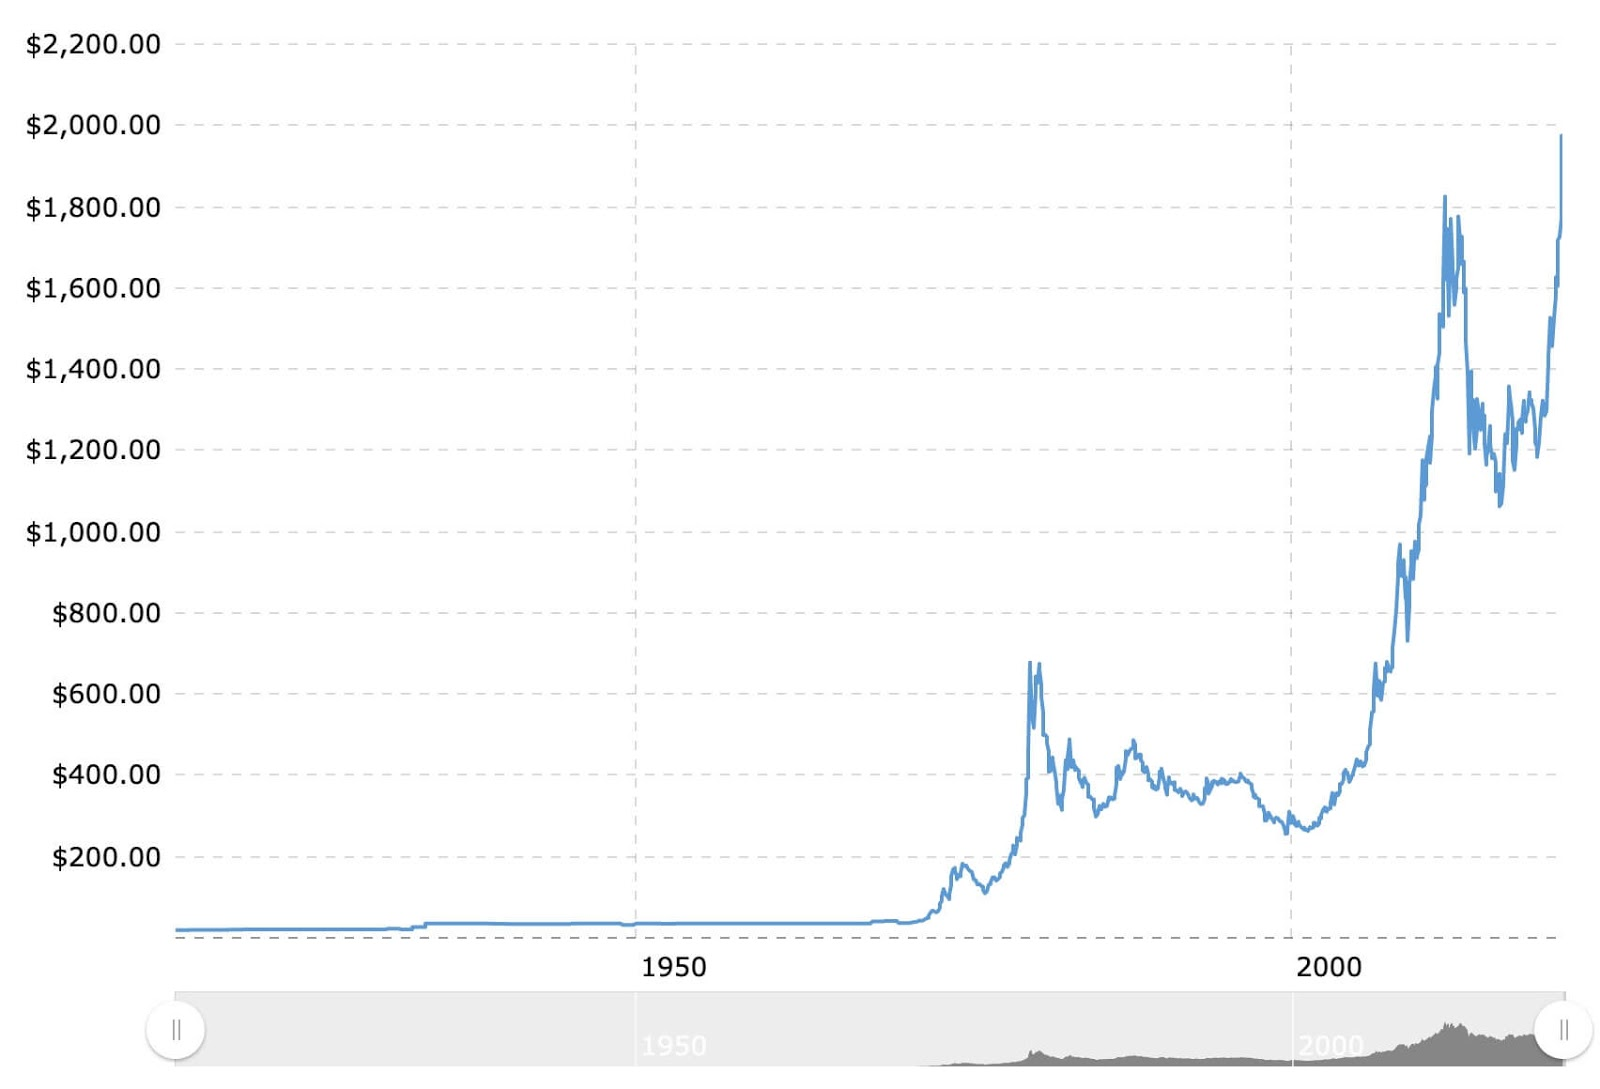 100 year gold price